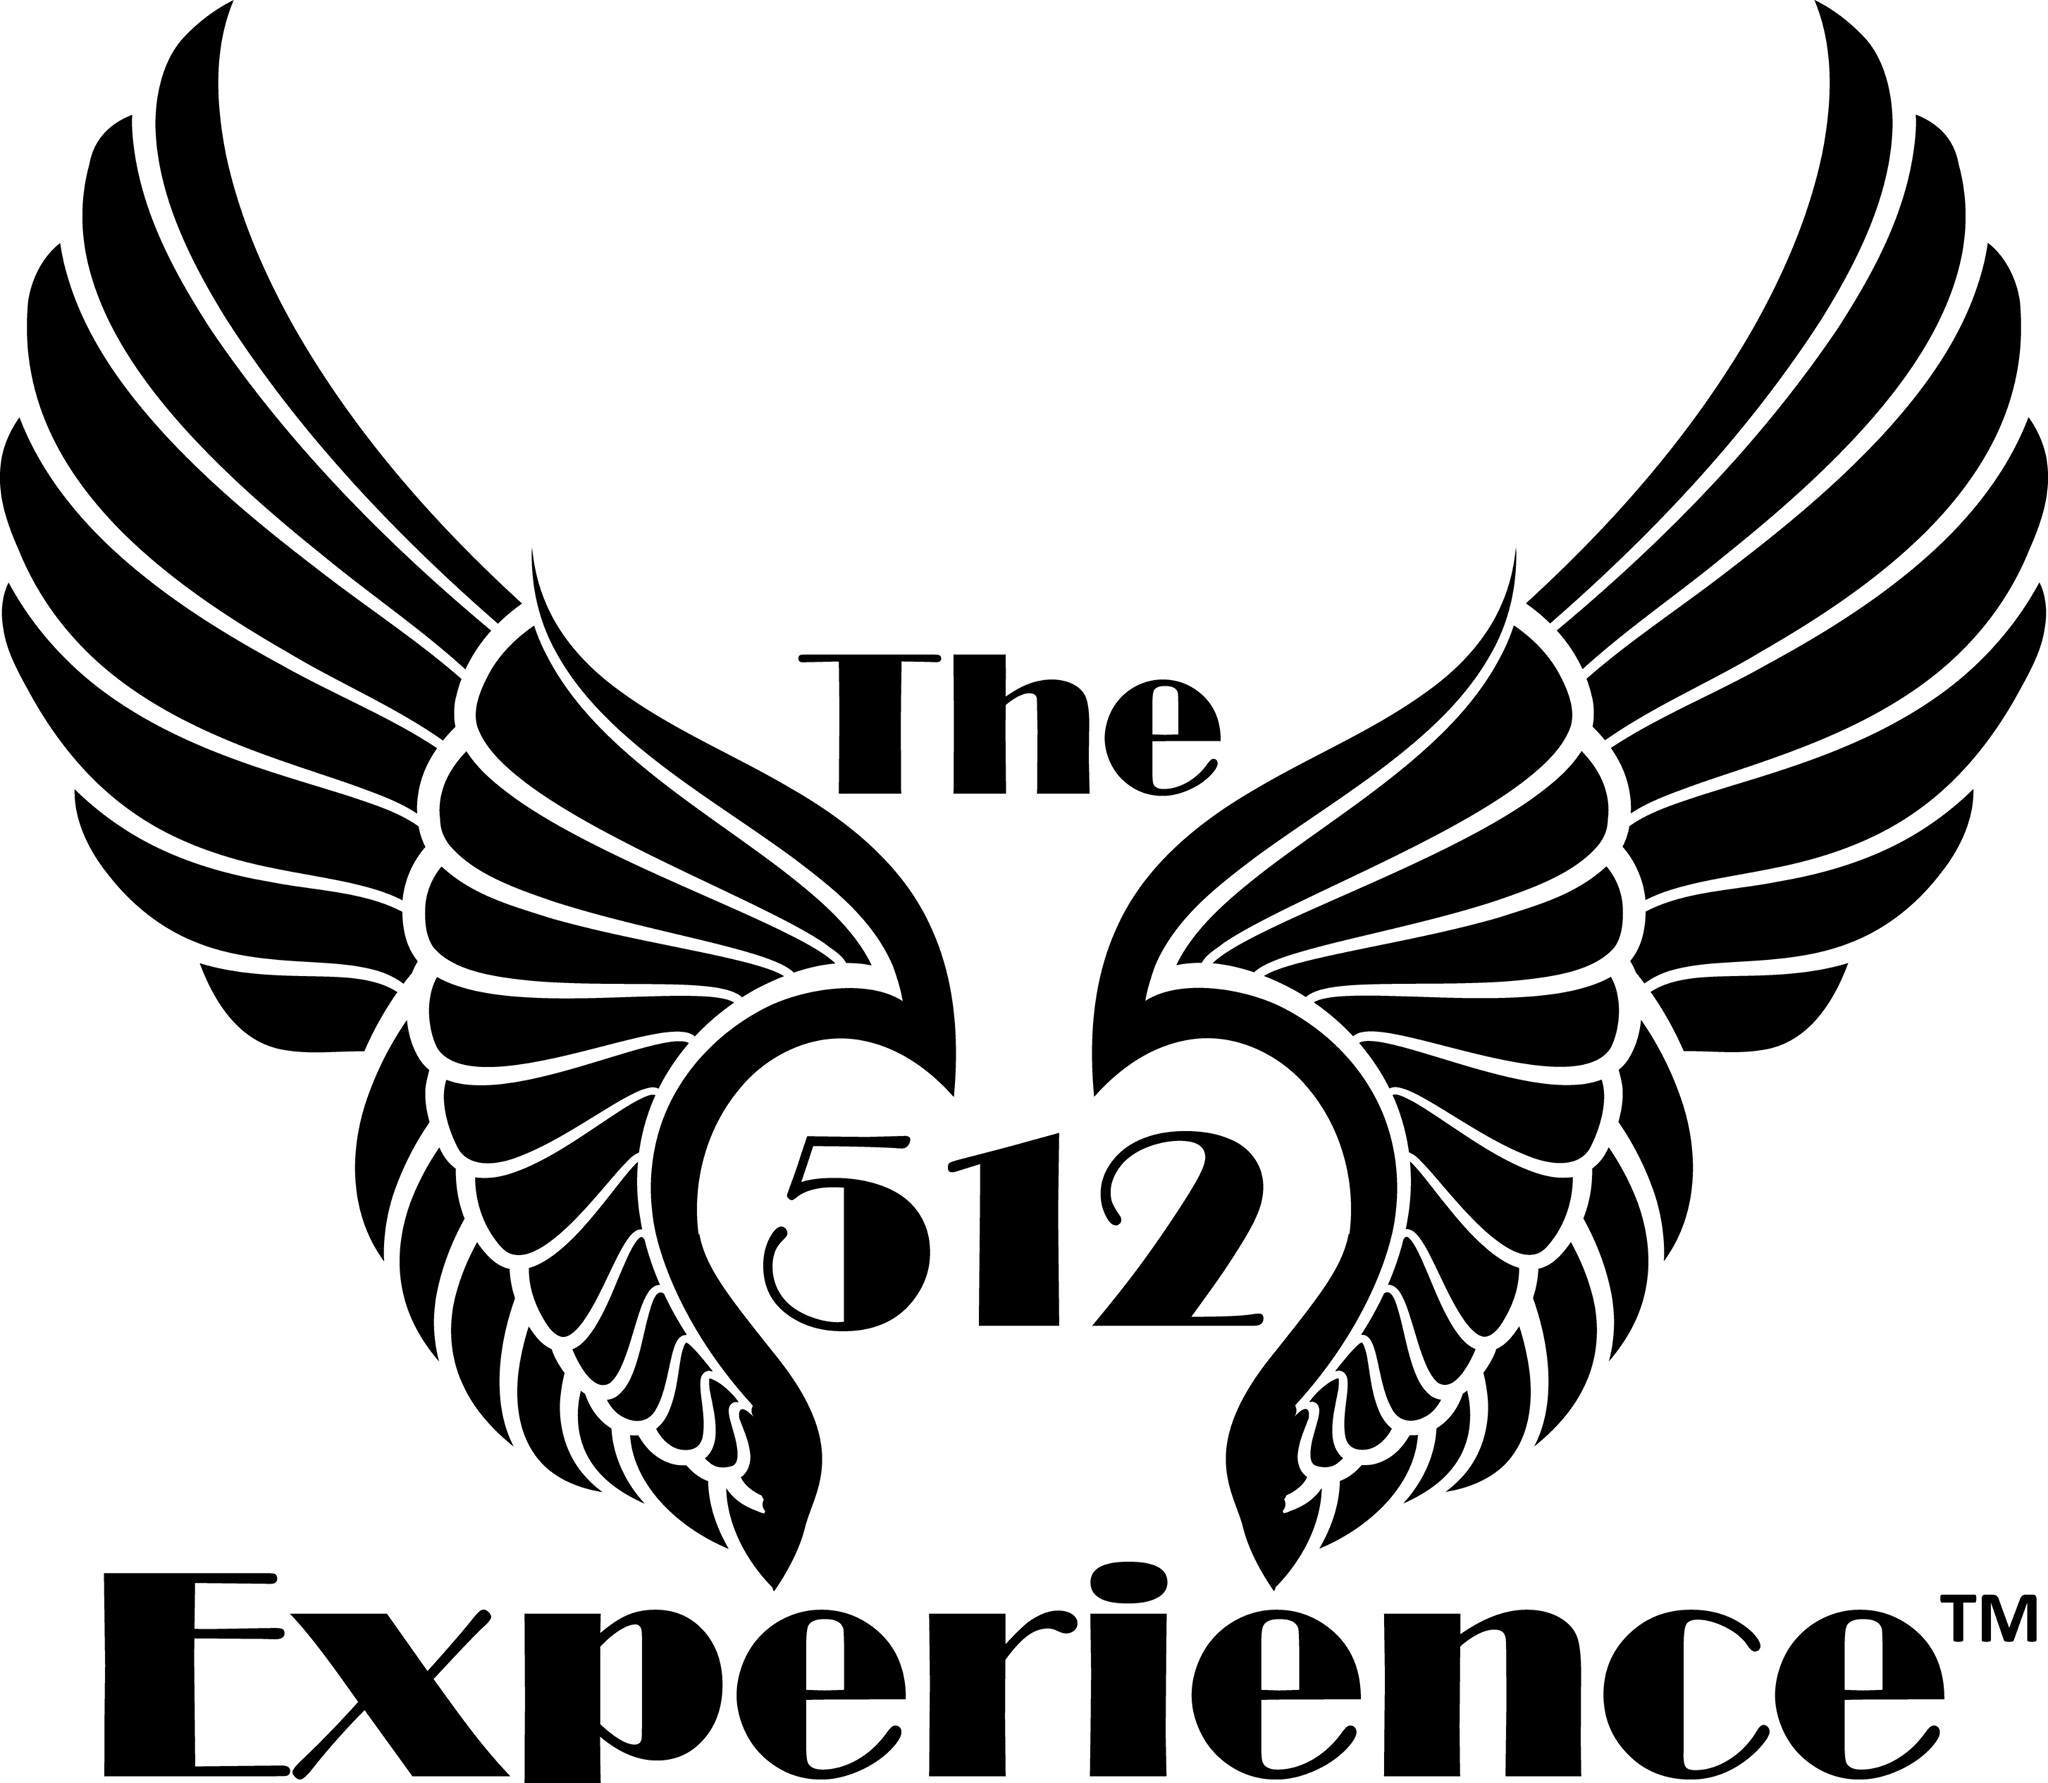 The 512 Experience Band